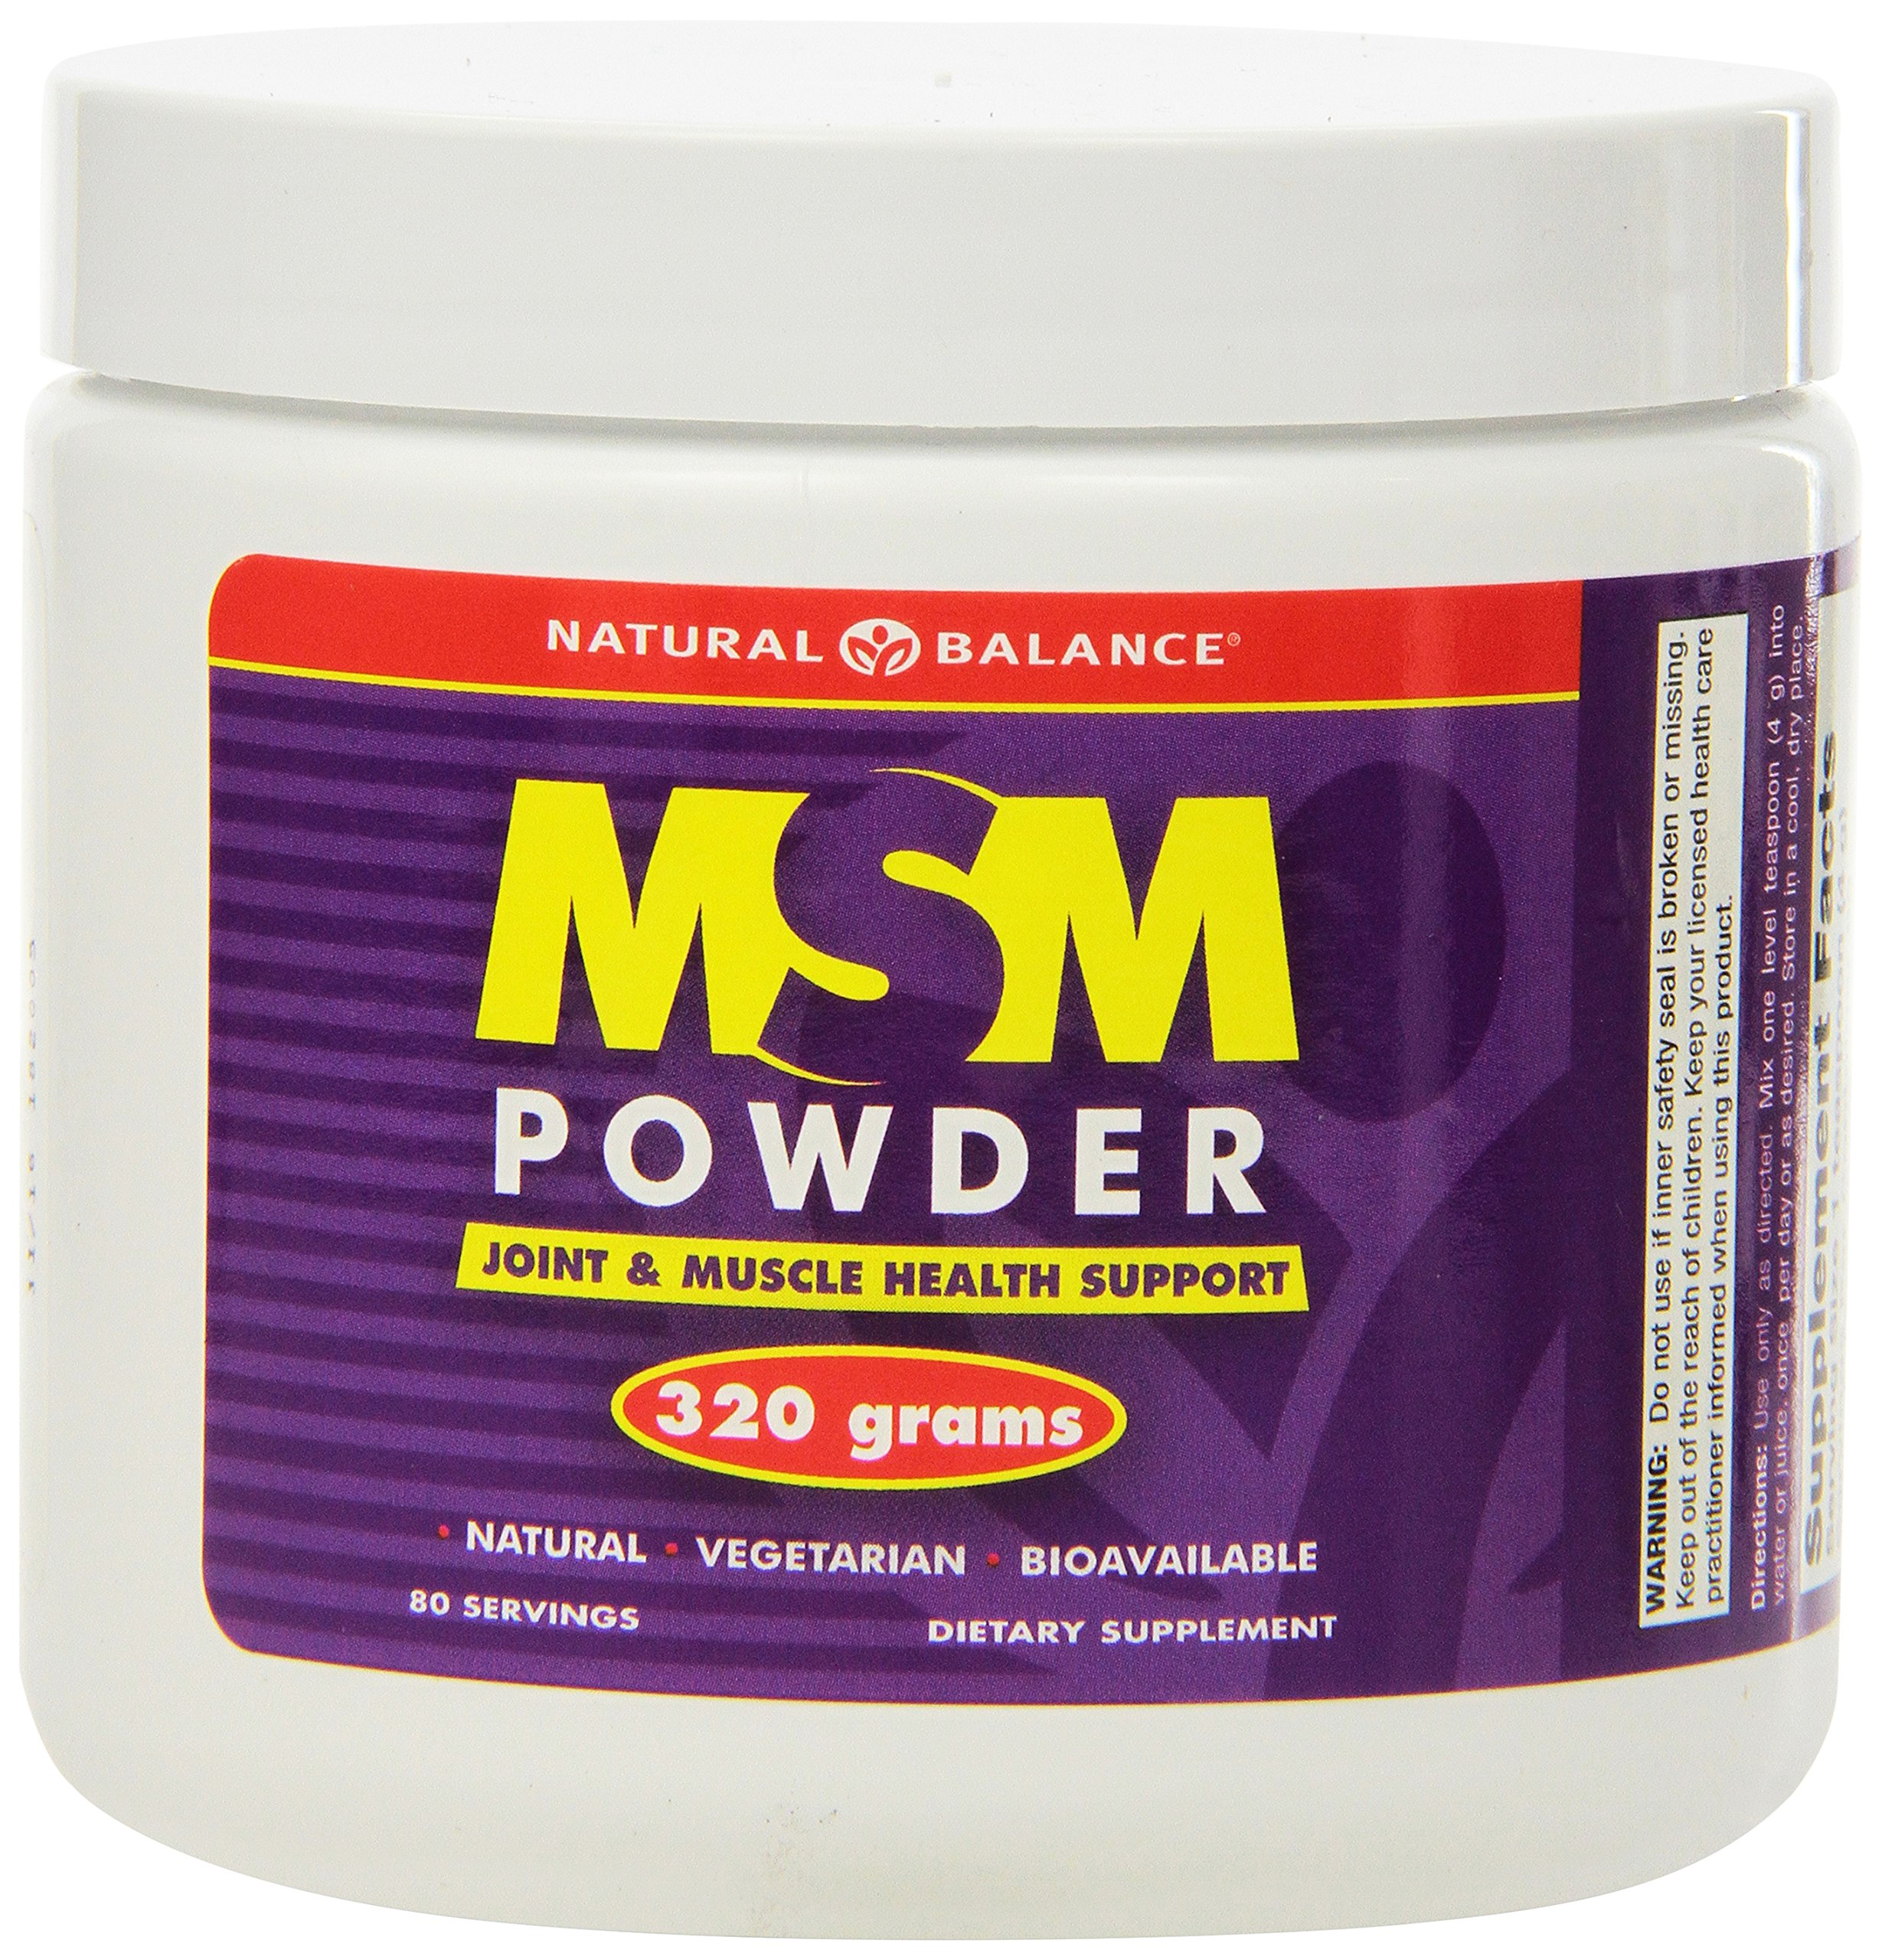 Natural Balance MSM, Unflavored, Powder, 320 Grams (Pack of 6)